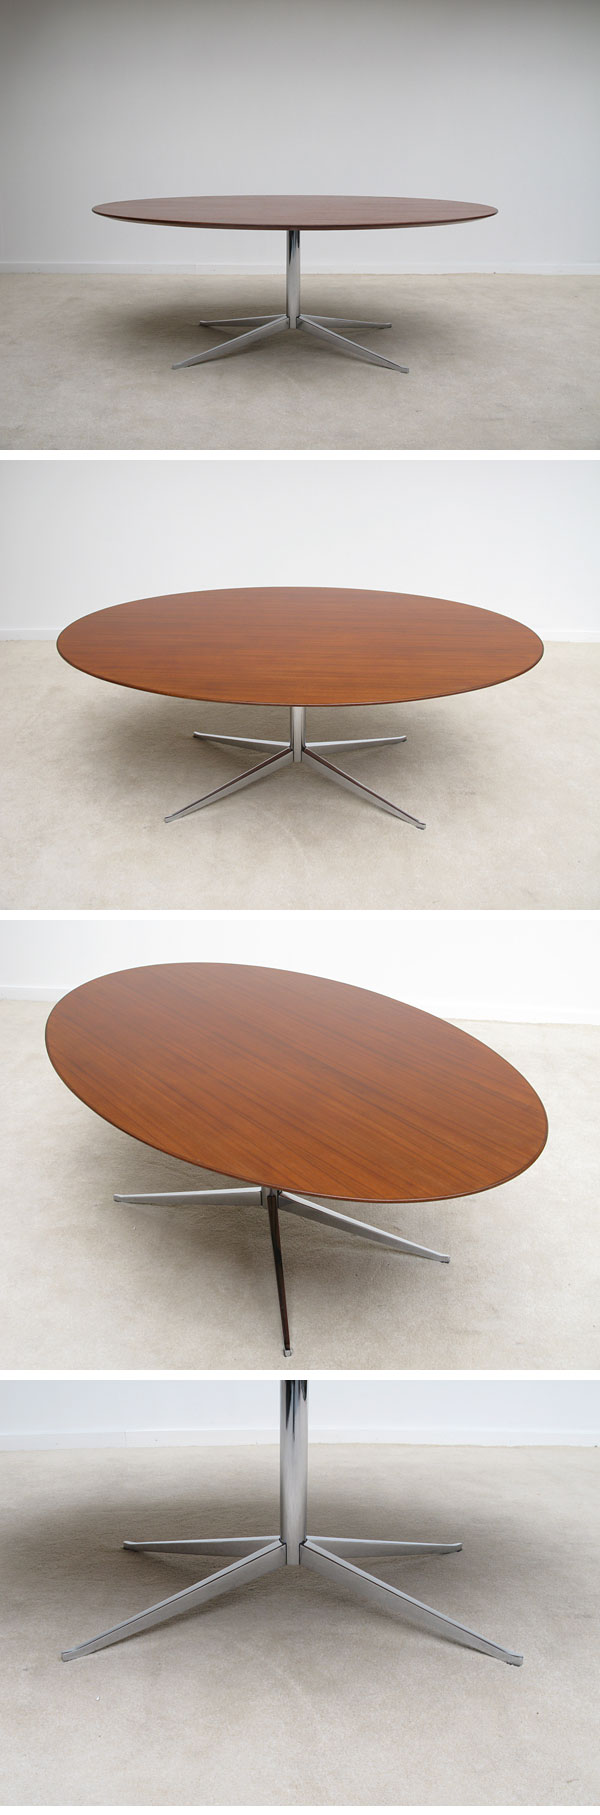 City Furniture 1960s Elliptical Conference Dining